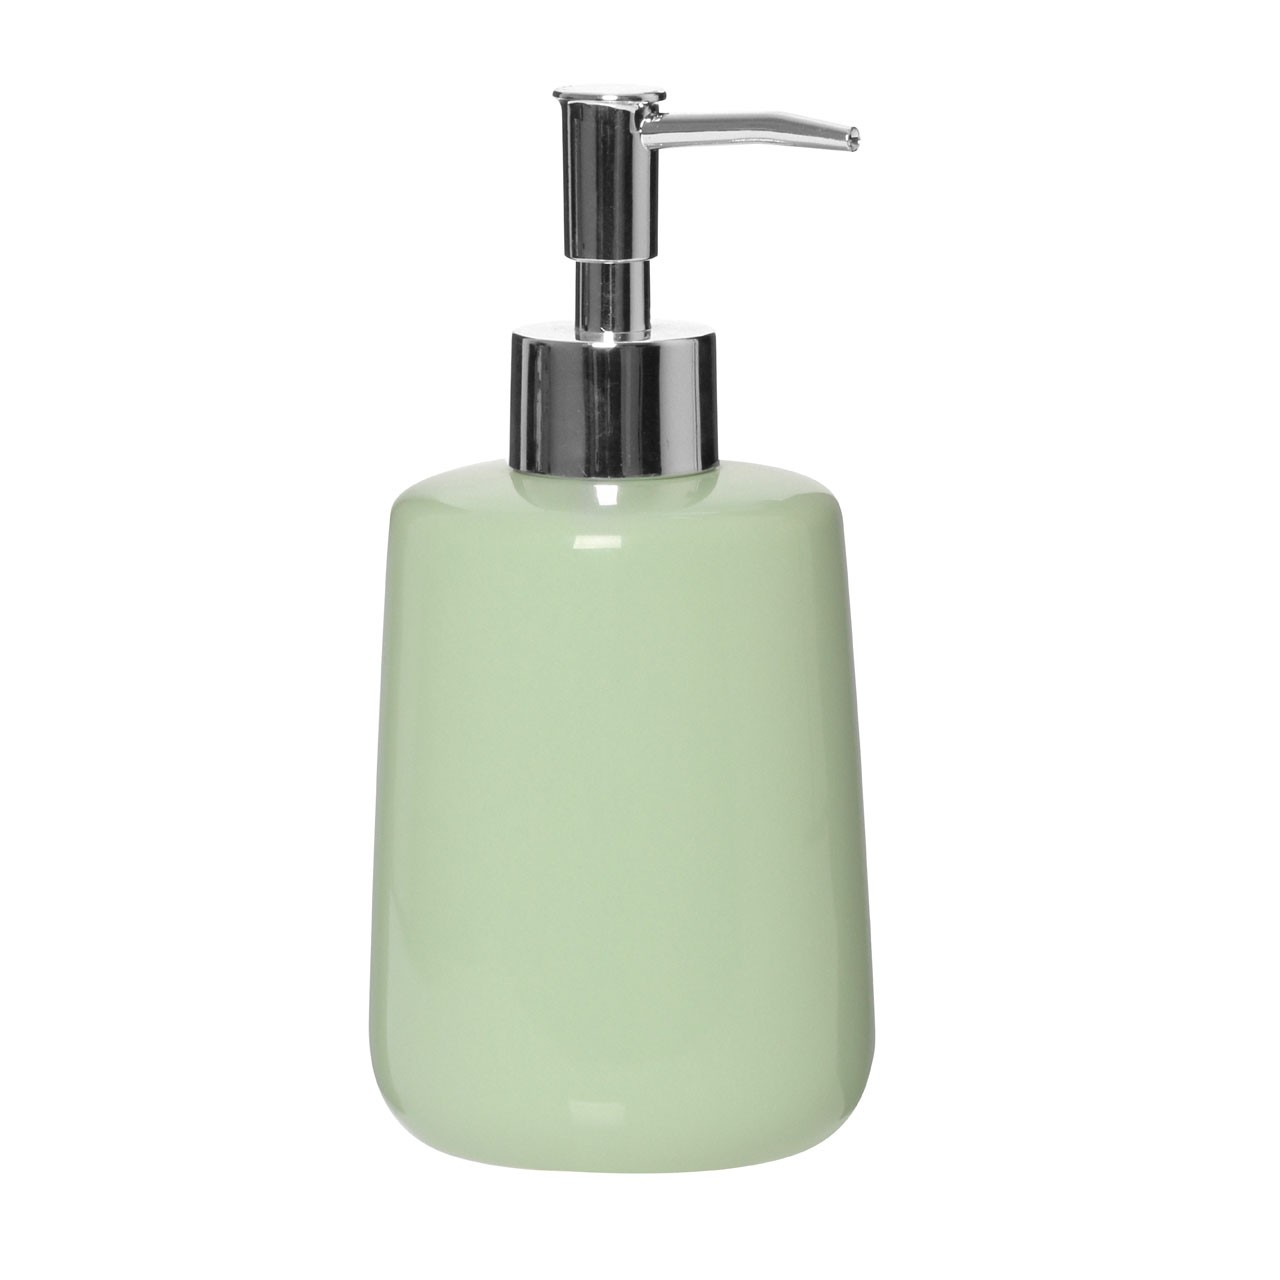 Prime Furnishing Moon Lotion Dispenser - Pale Green